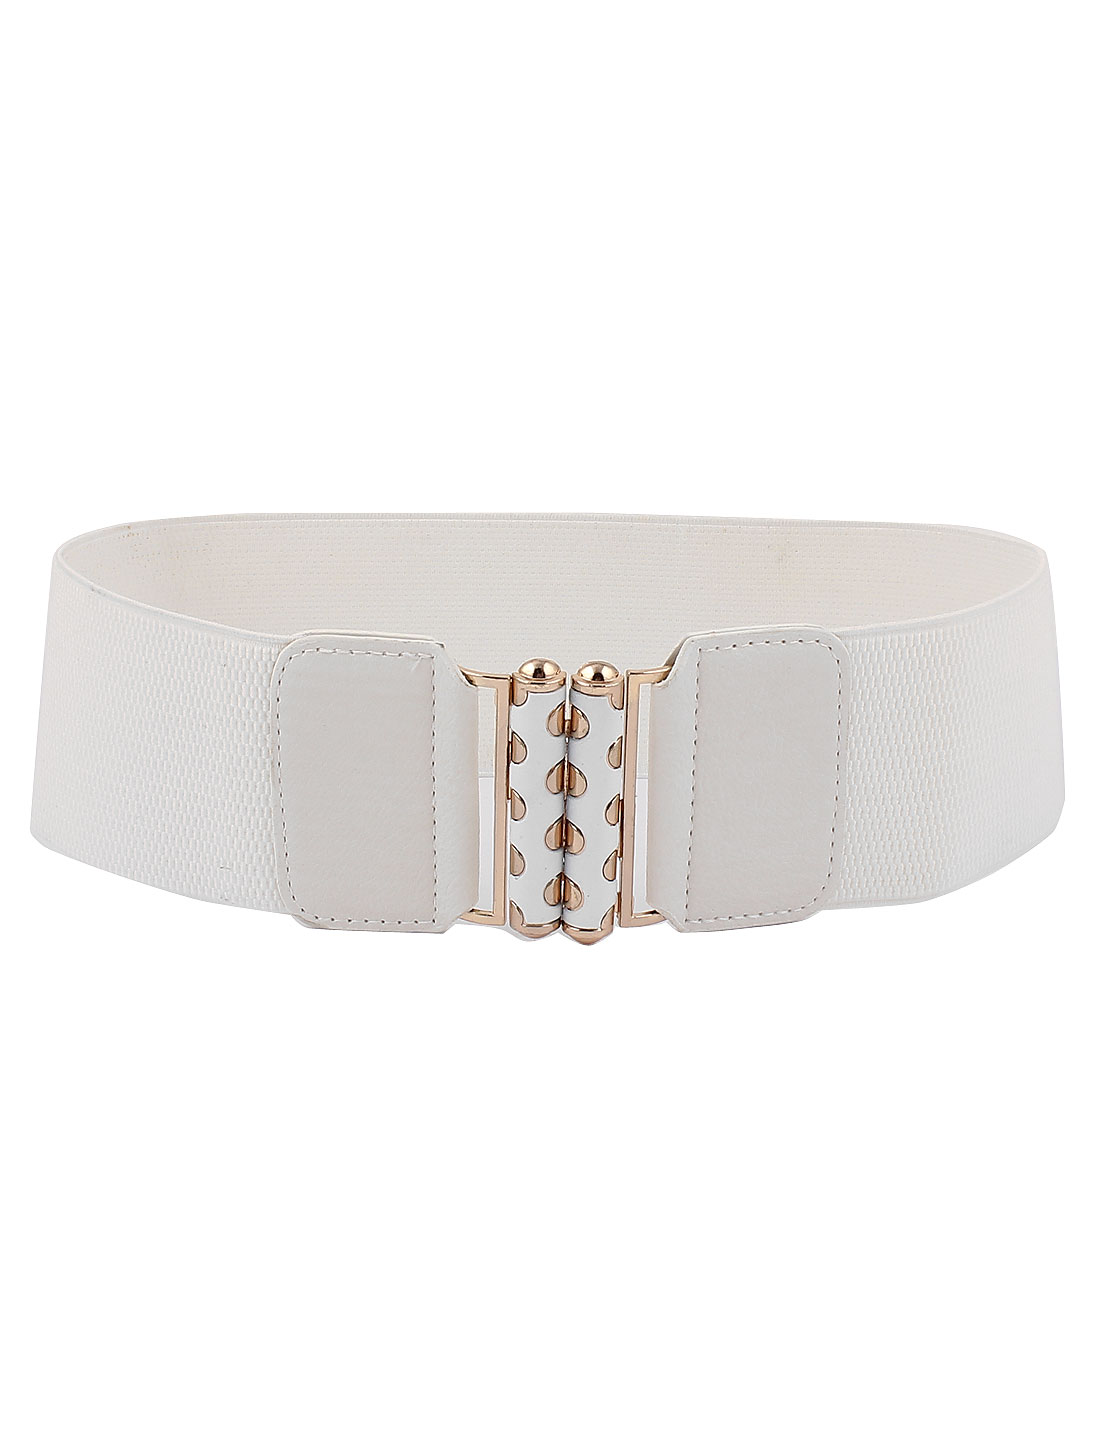 Women Metal Buckle 3 inch Wide Elastic Waist Belt Waistband White